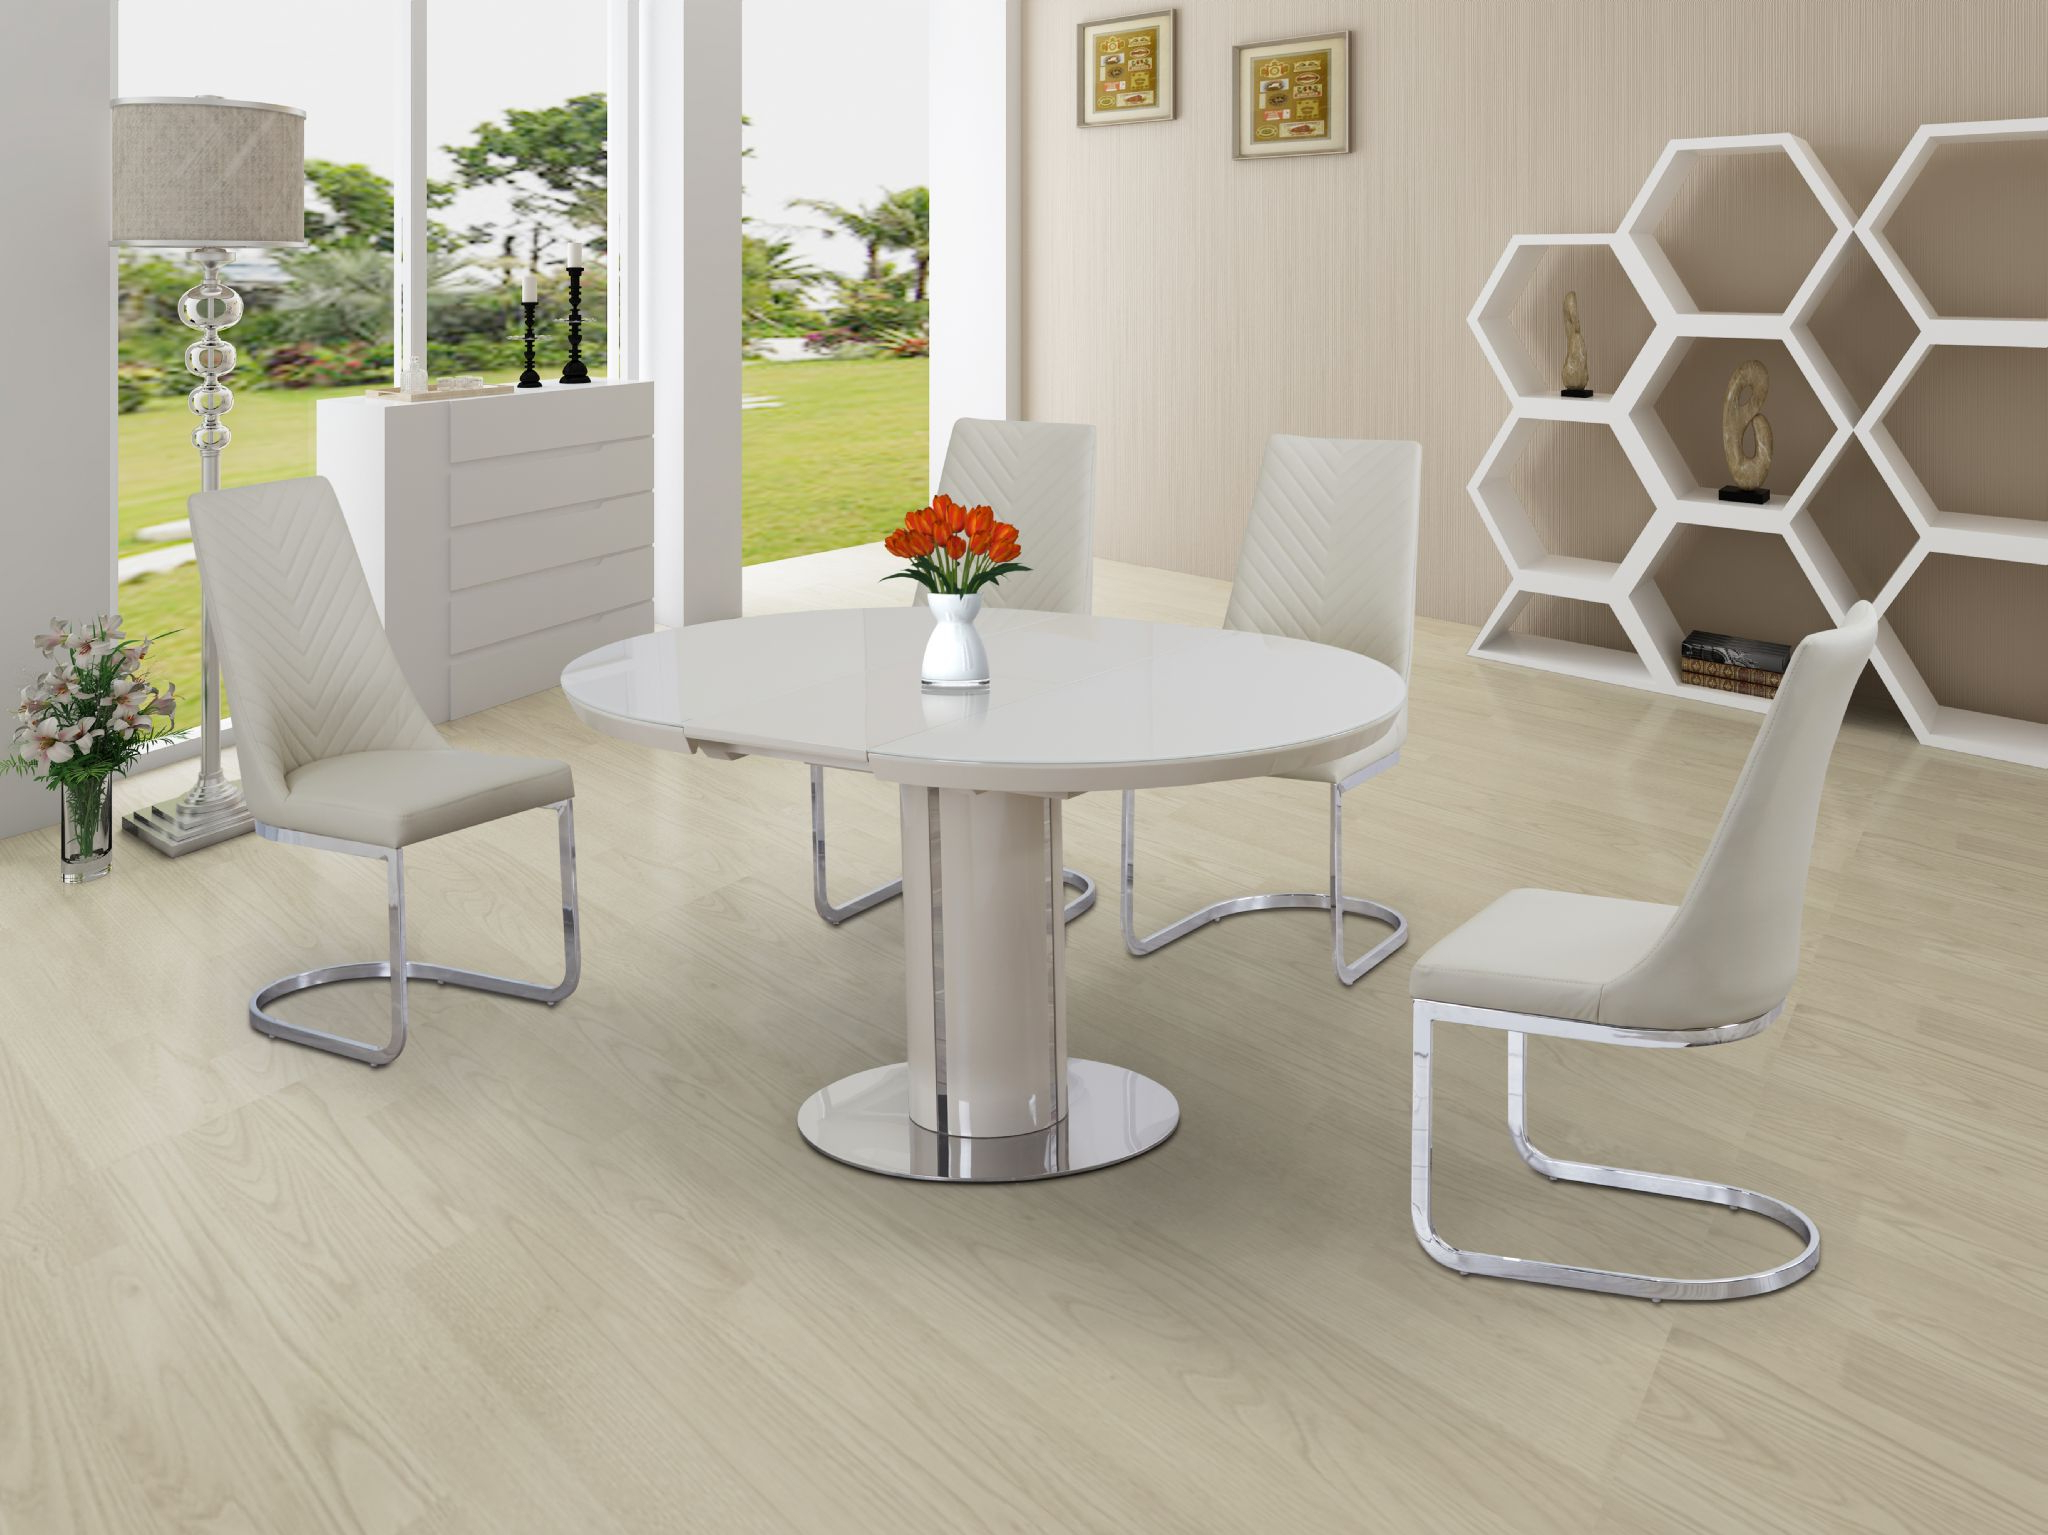 Well Known Eclipse Dining Tables Intended For Eclipse Round / Oval Gloss & Glass Extending 110 To 145 Cm Dining Table –  Cream (View 11 of 25)